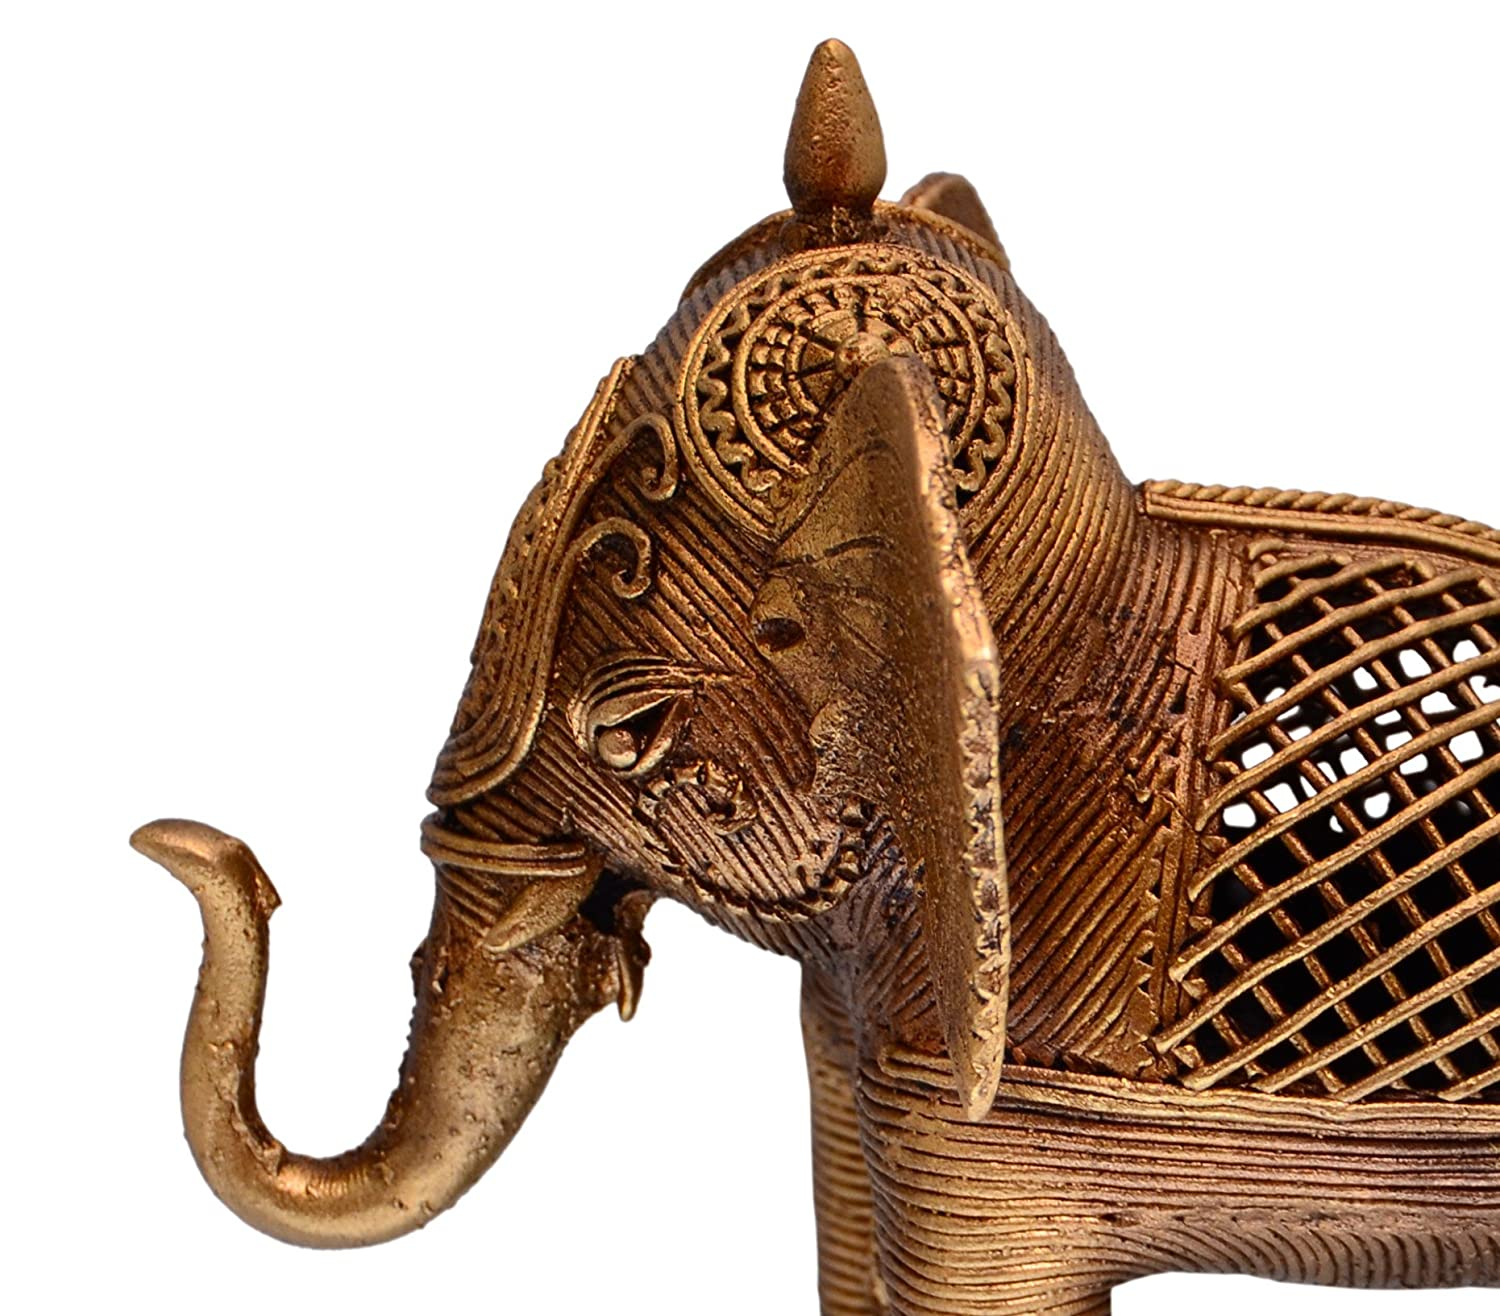 Buy purpledip dhokra art elephant metal statue with feng shui buy purpledip dhokra art elephant metal statue with feng shui vastu significance unique gift showpiece 10705 online at low prices in india amazon biocorpaavc Image collections